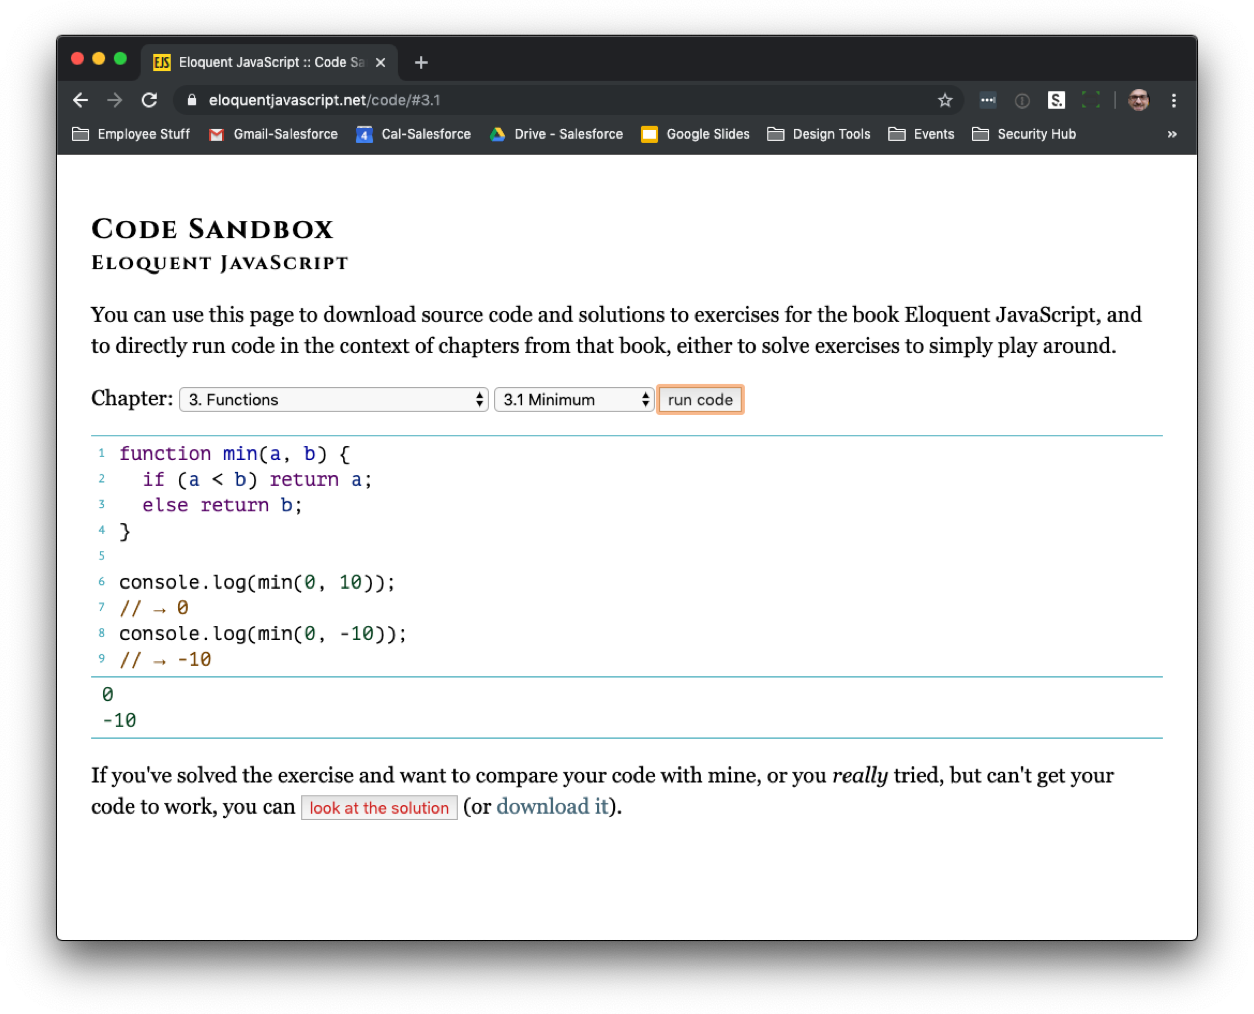 Excercise 3.1 from Eloquent Javascript in Haverbeke's online sandbox environment